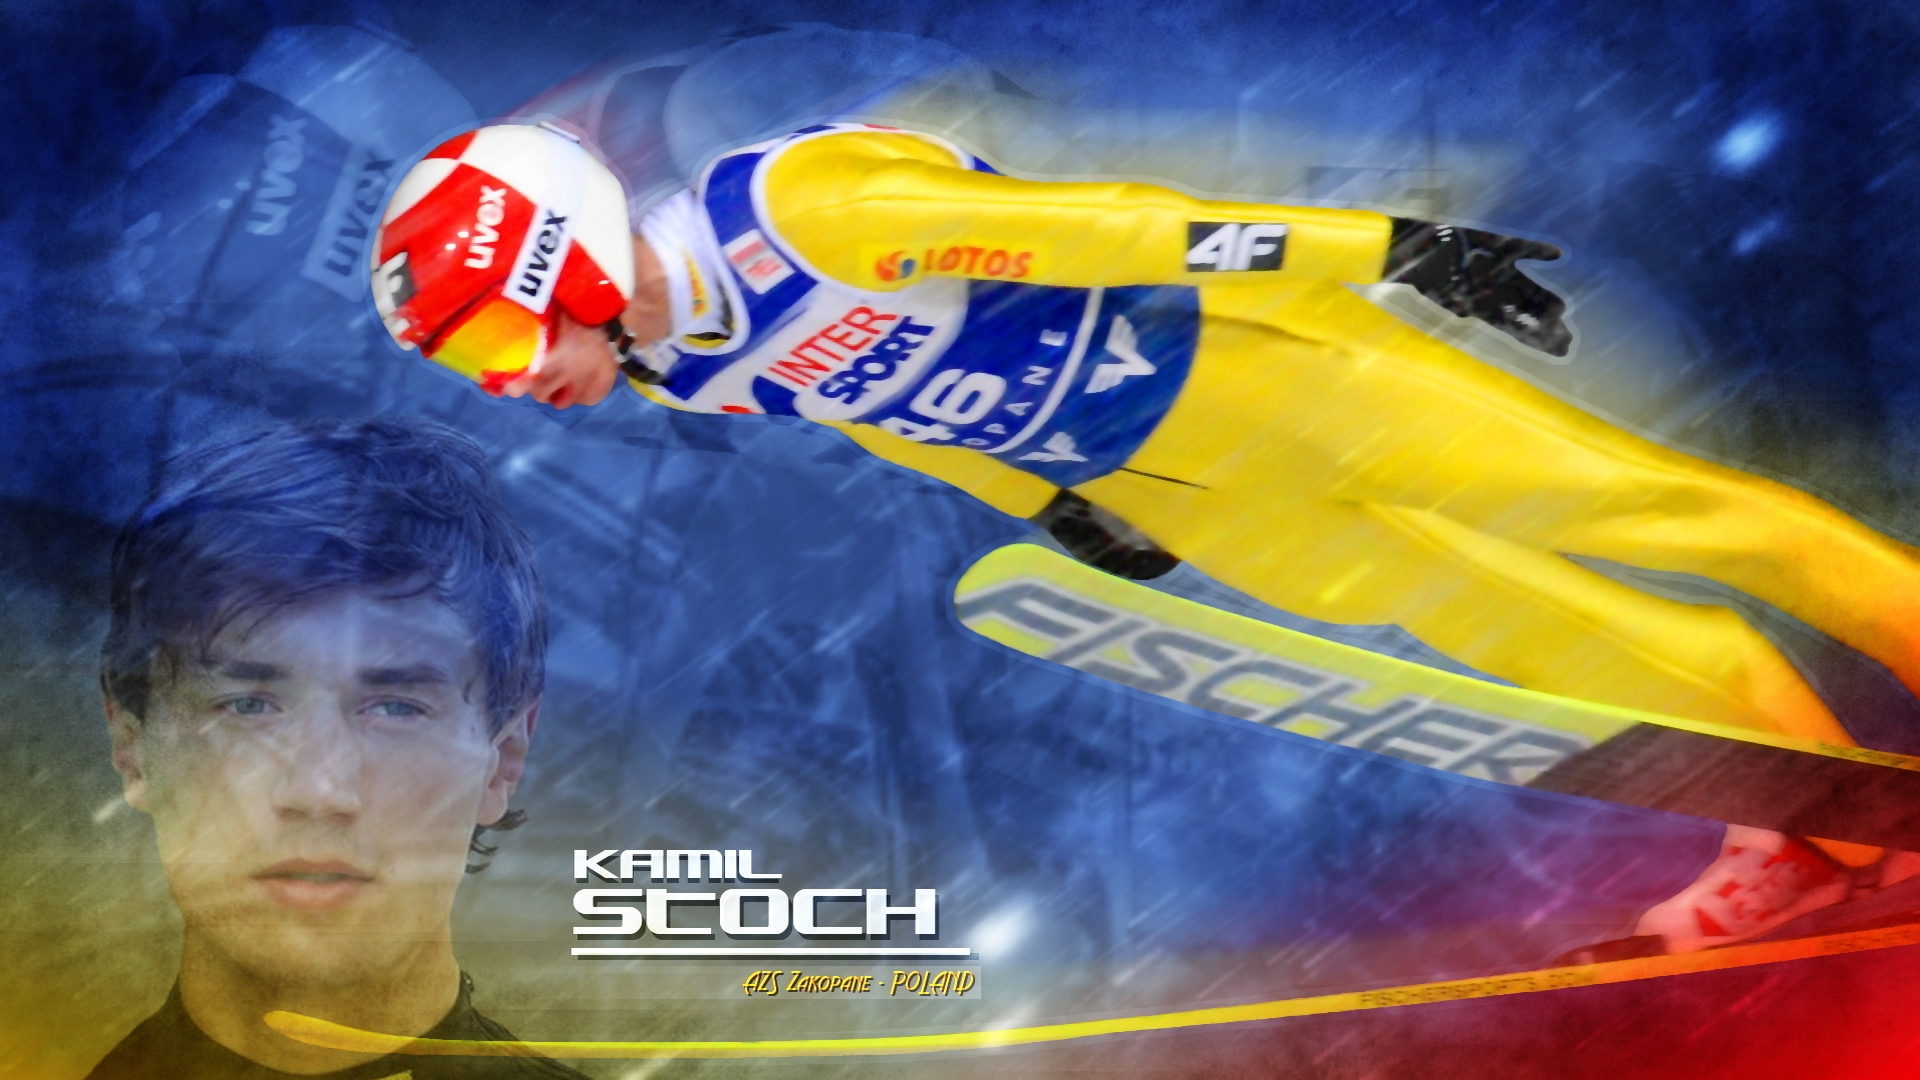 1920x1080 - Kamil Stoch Wallpapers 2